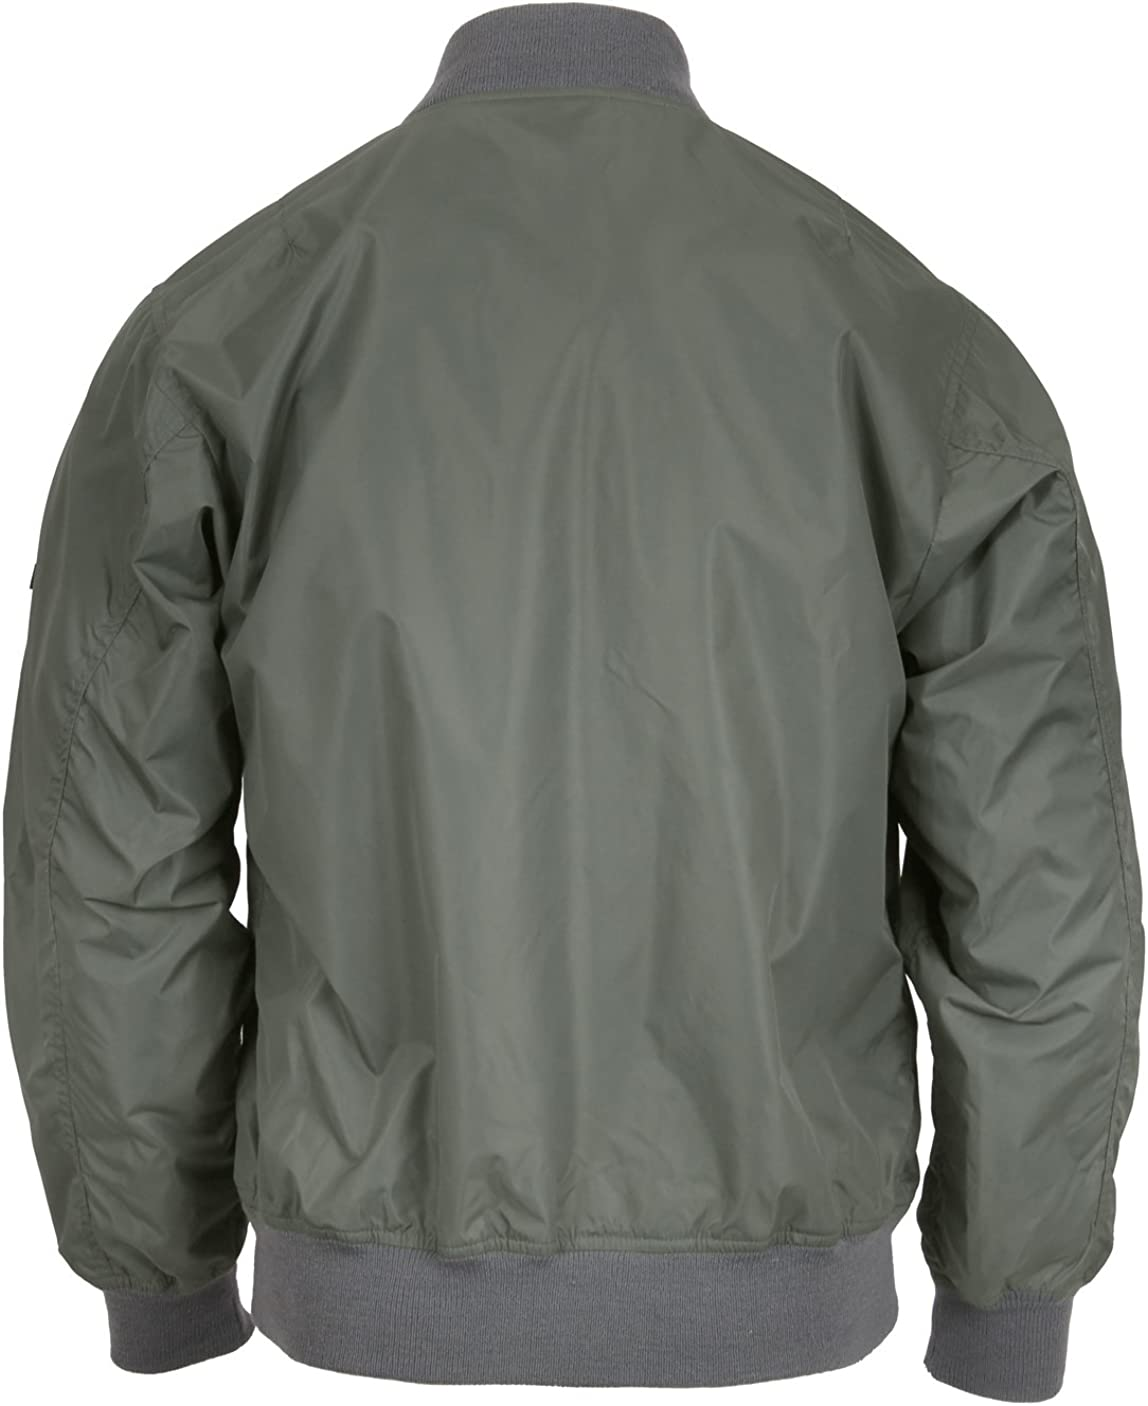 Selling Rothco Lightweight MA-1 Jacket Flight Branded goods